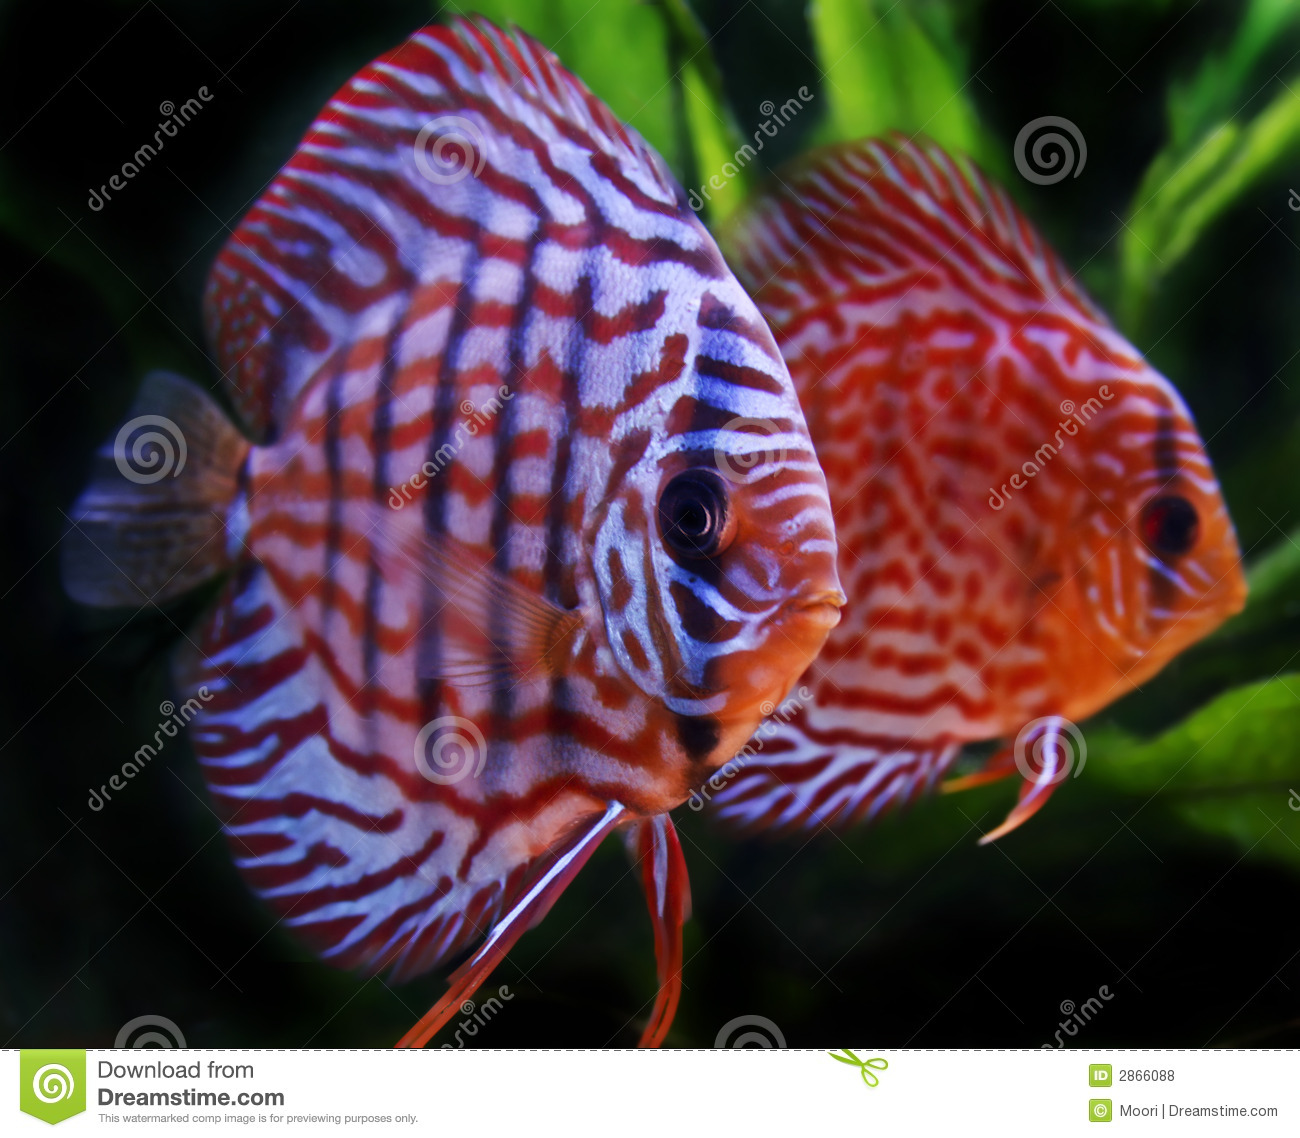 Discus fish royalty free stock photos image 2866088 for Photos of fish